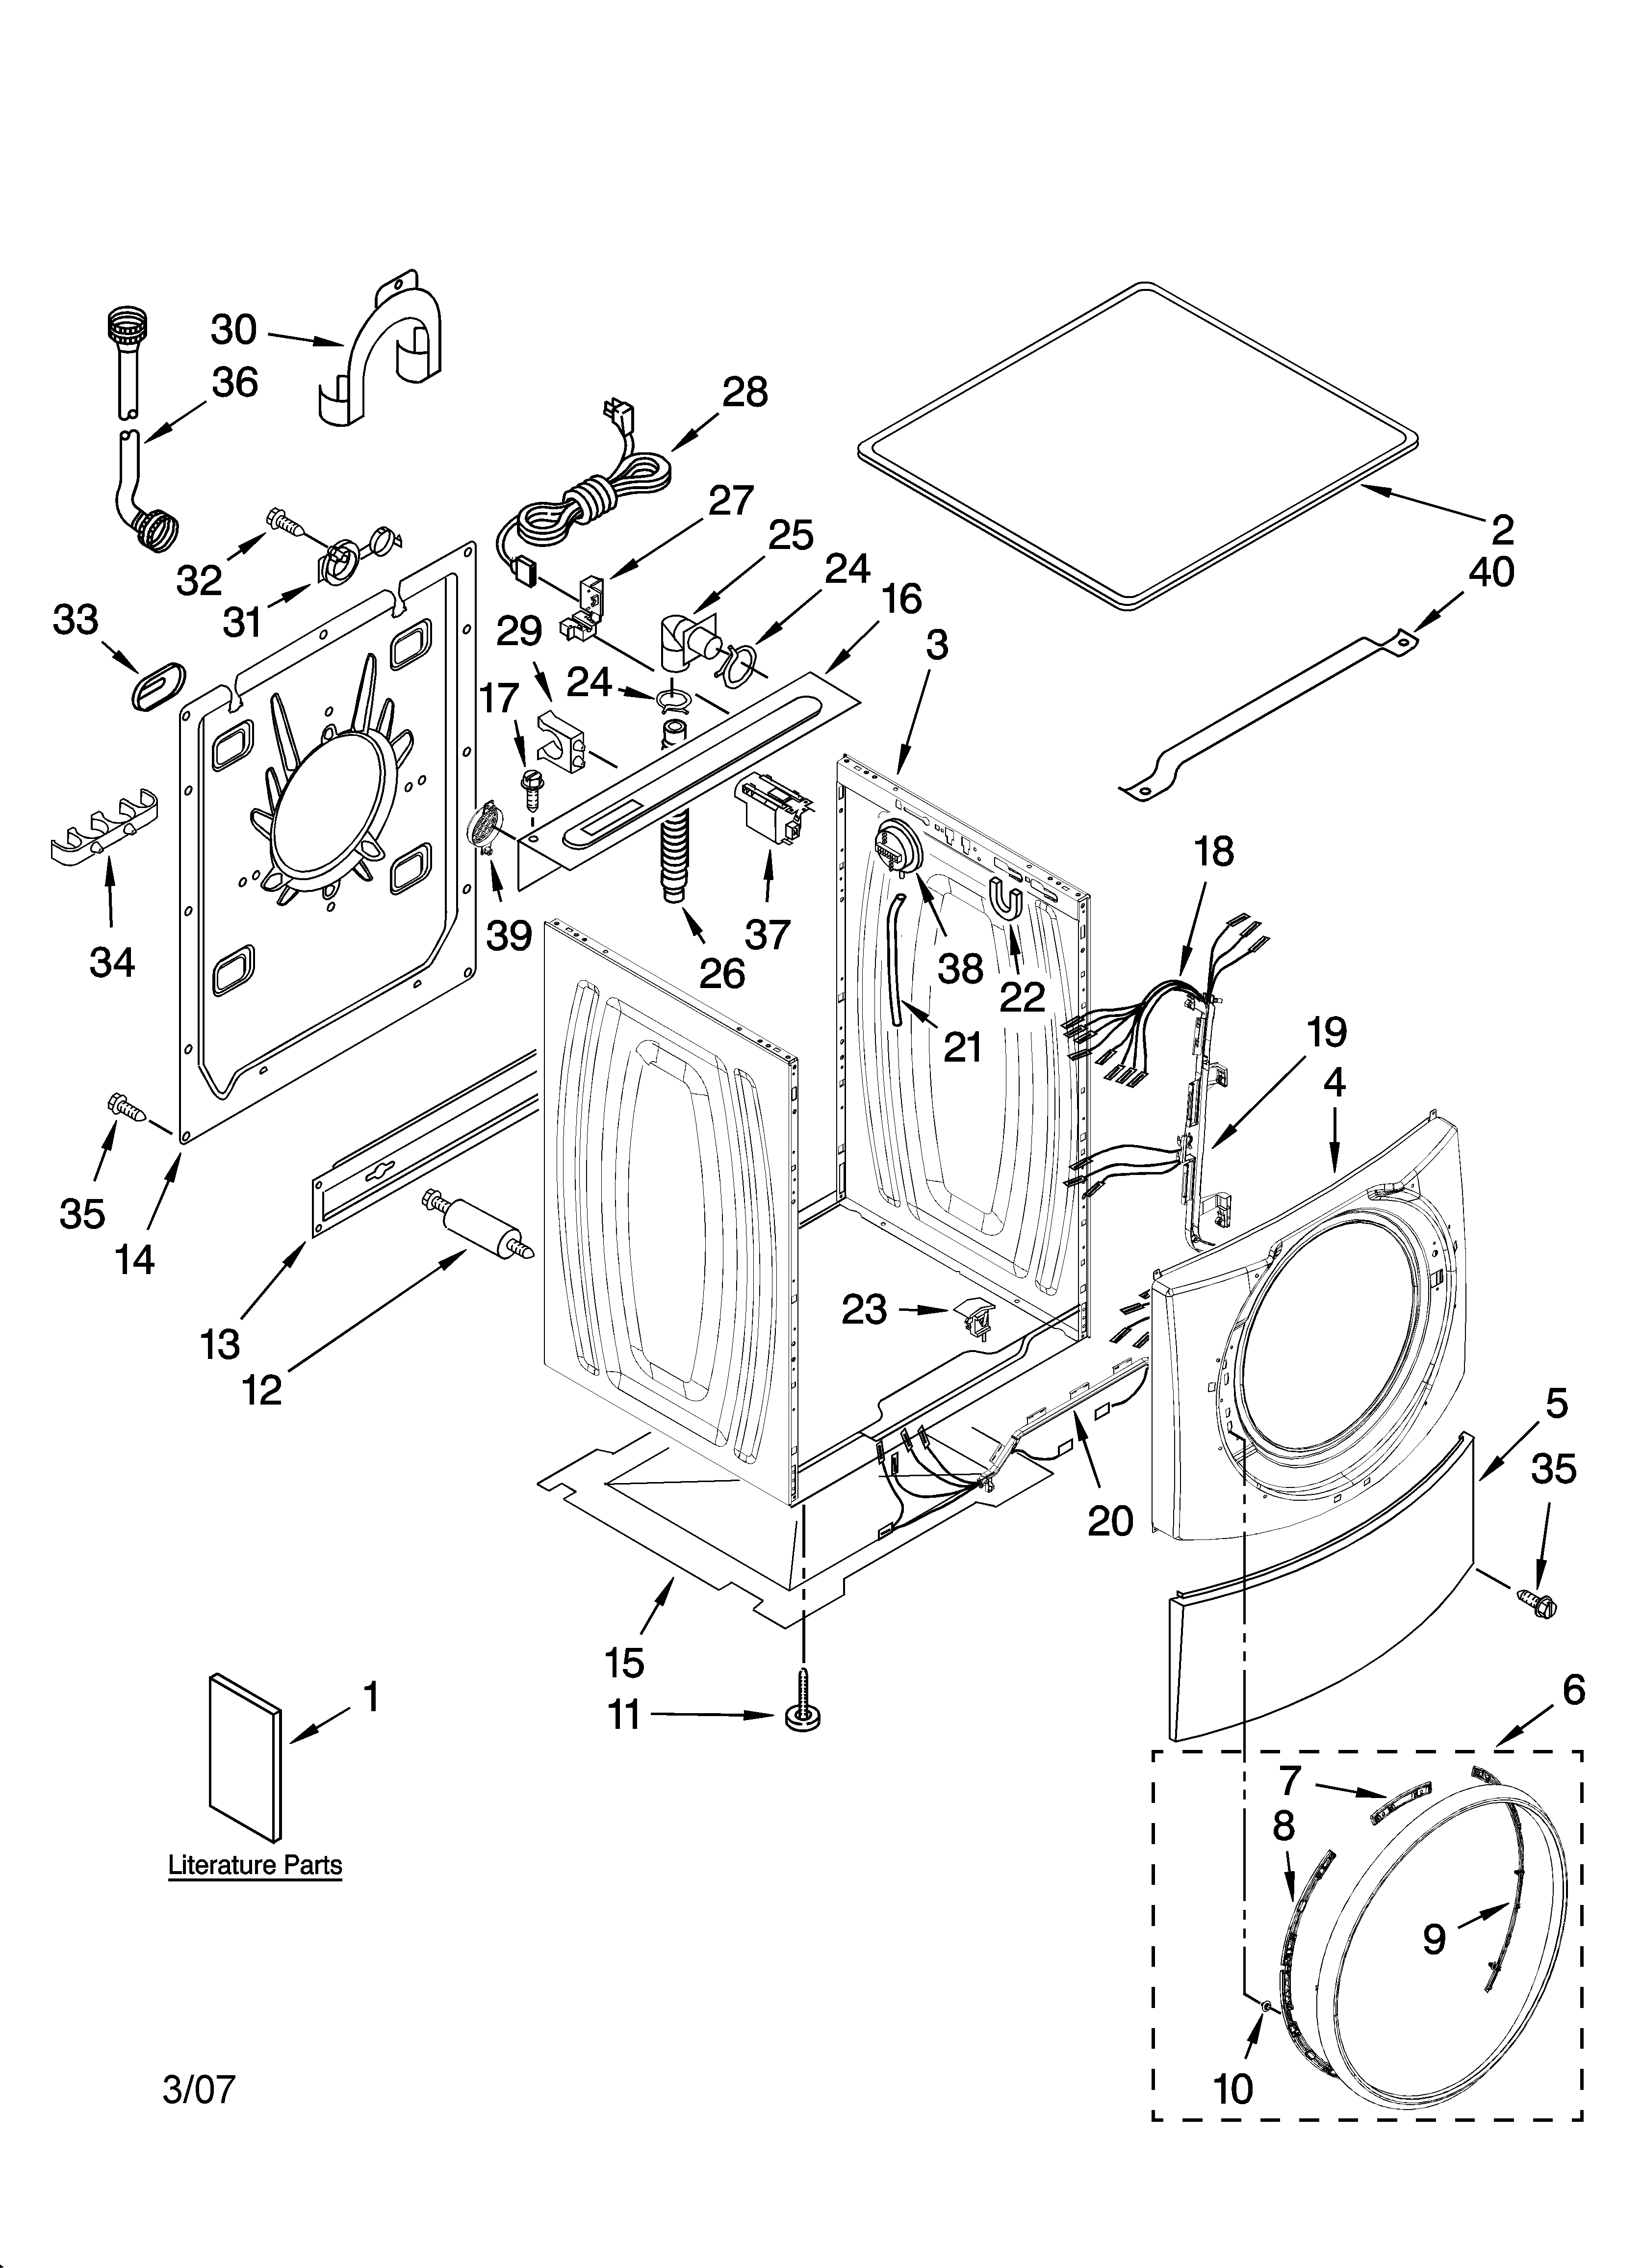 wiring diagram for kenmore dryer model 110 Download-Kenmore Dryer Model 110 Parts Diagram New Diagram Kenmore Elite Parts Diagram 6-d